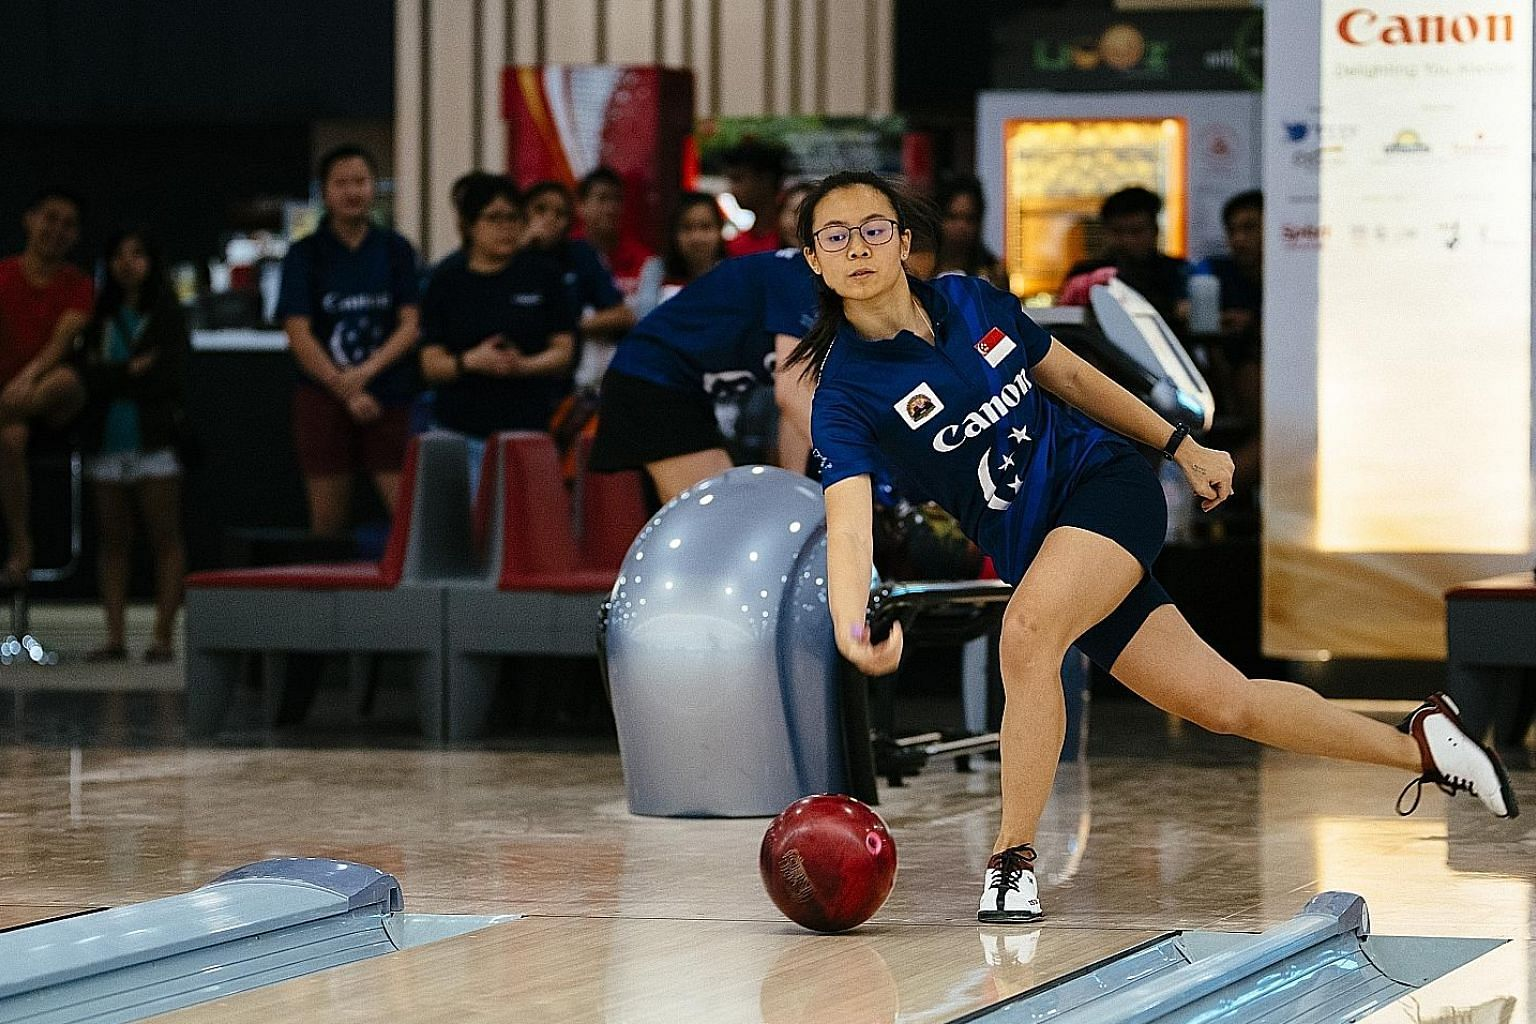 Charlene Lim, 19, cruised to a 203-155 pinfall victory over Geraldine Ng to clinch the women's title in the 49th Singapore National Championships yesterday at the SingaporeBowling @ Rifle Range bowling centre. Fellow teenager Jomond Chia, 18, was the